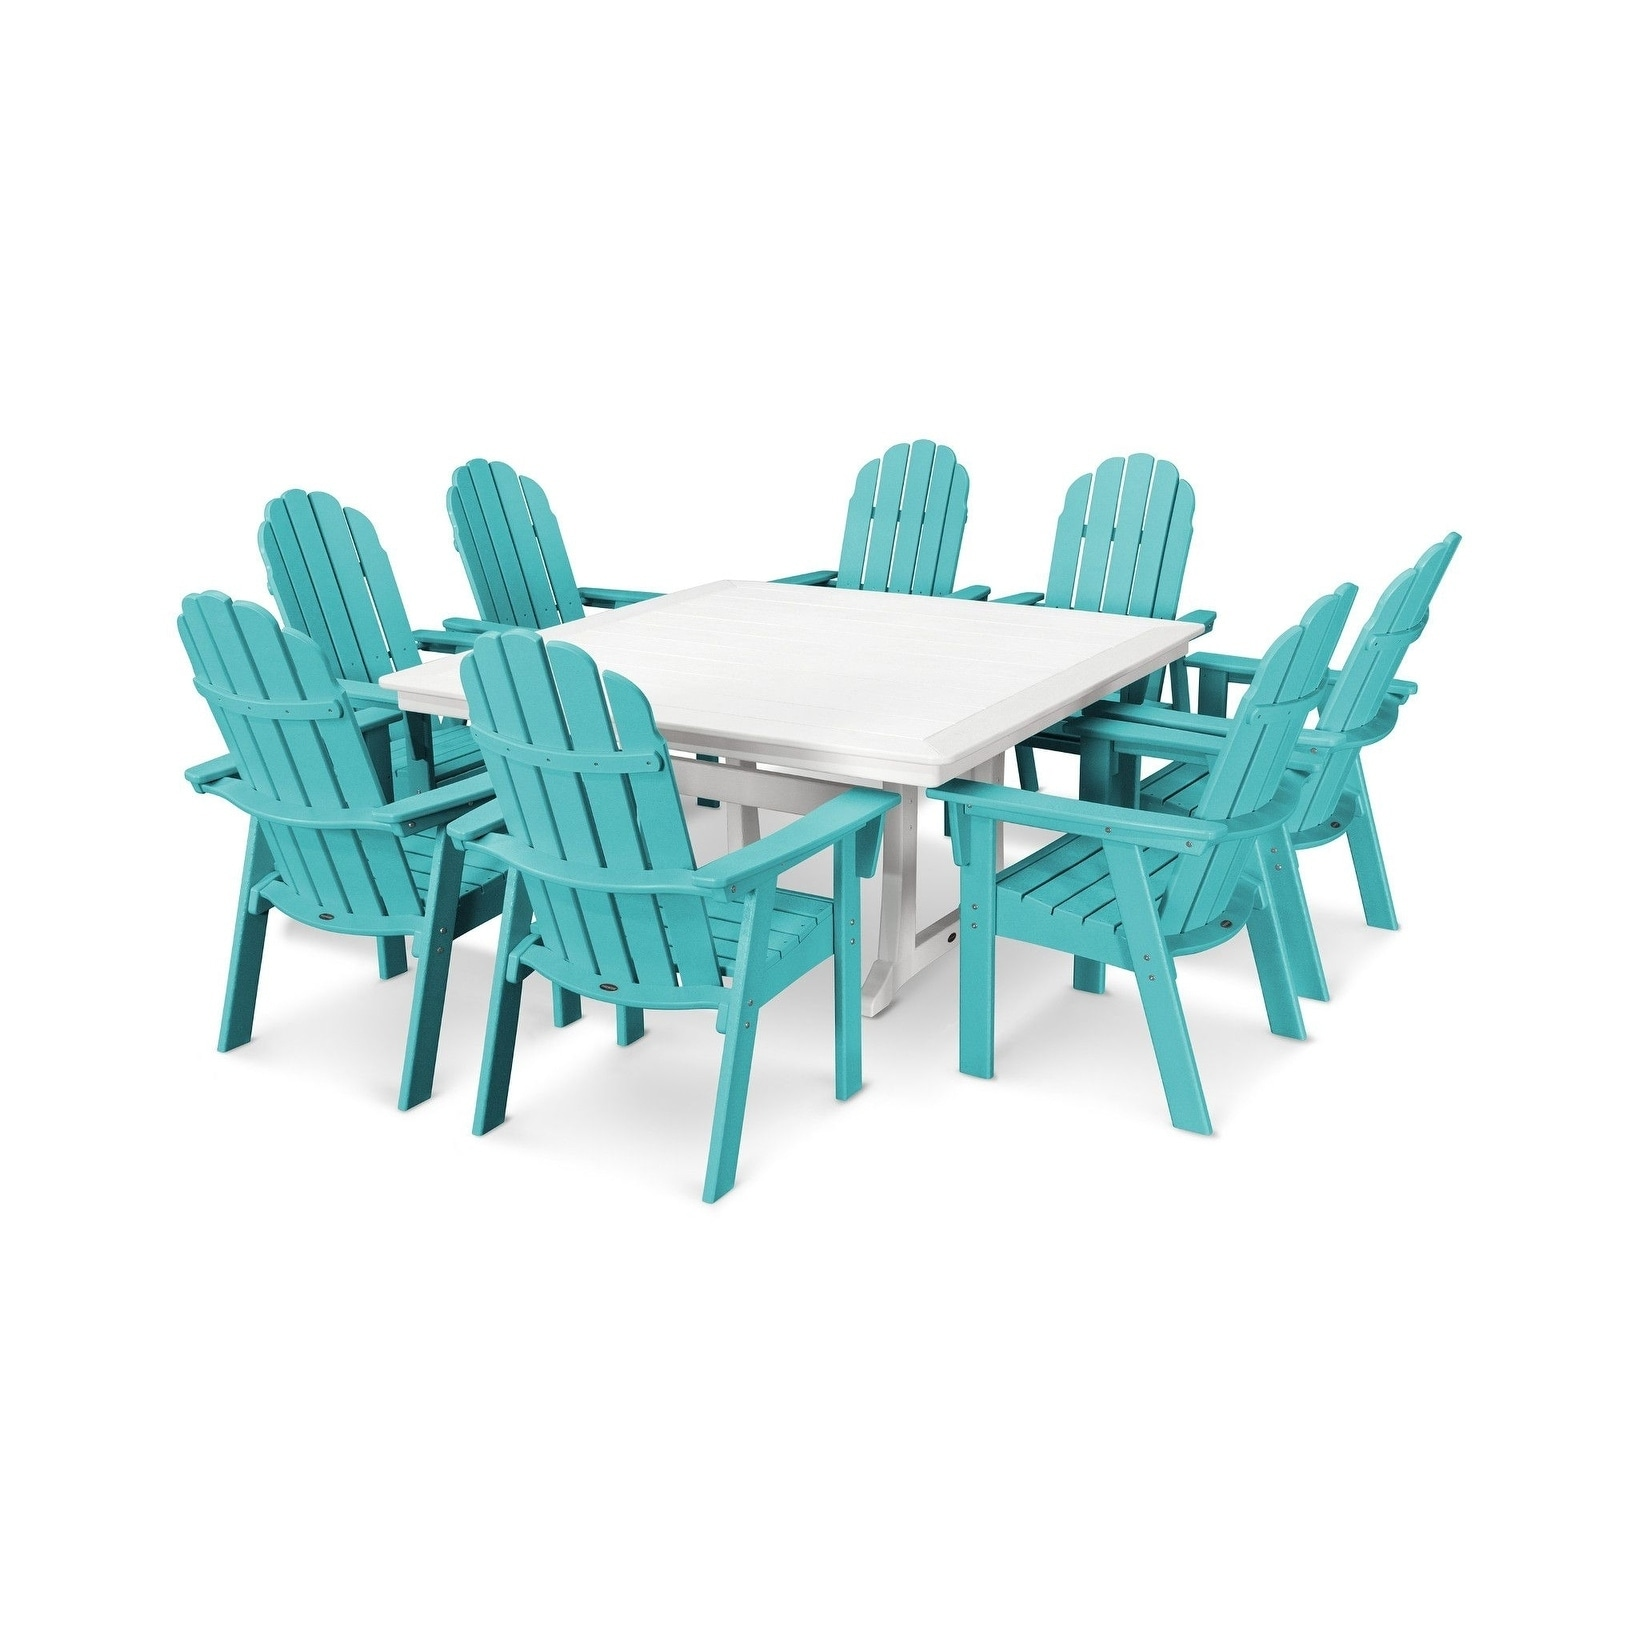 POLYWOOD Vineyard Adirondack 9-Piece Nautical Trestle Dining Set ...